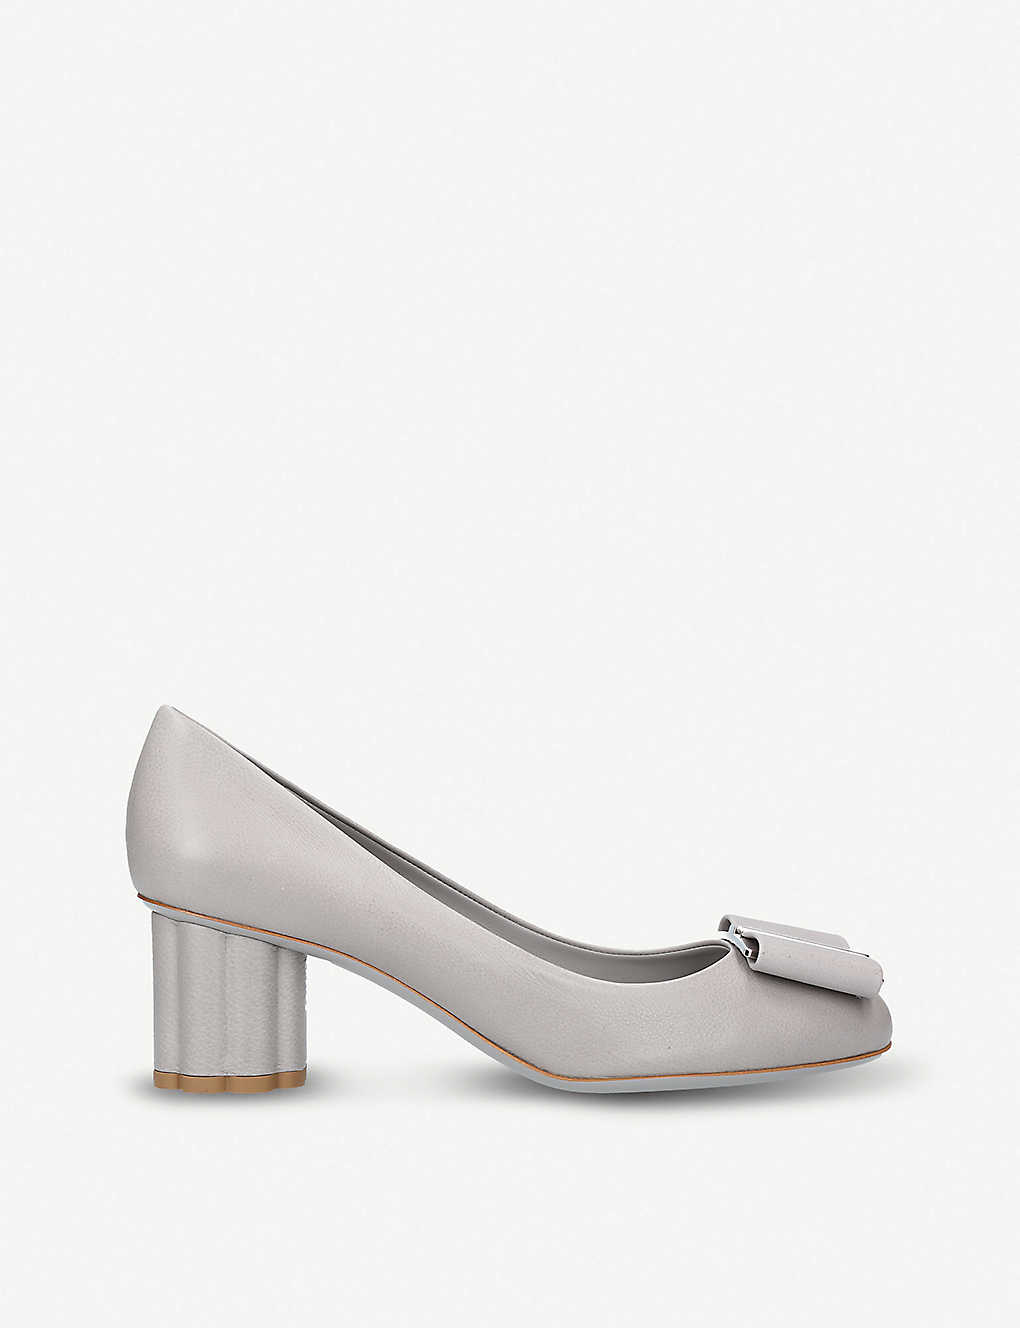 c8f2e44af31ce SALVATORE FERRAGAMO - Capua bow-detail leather pumps